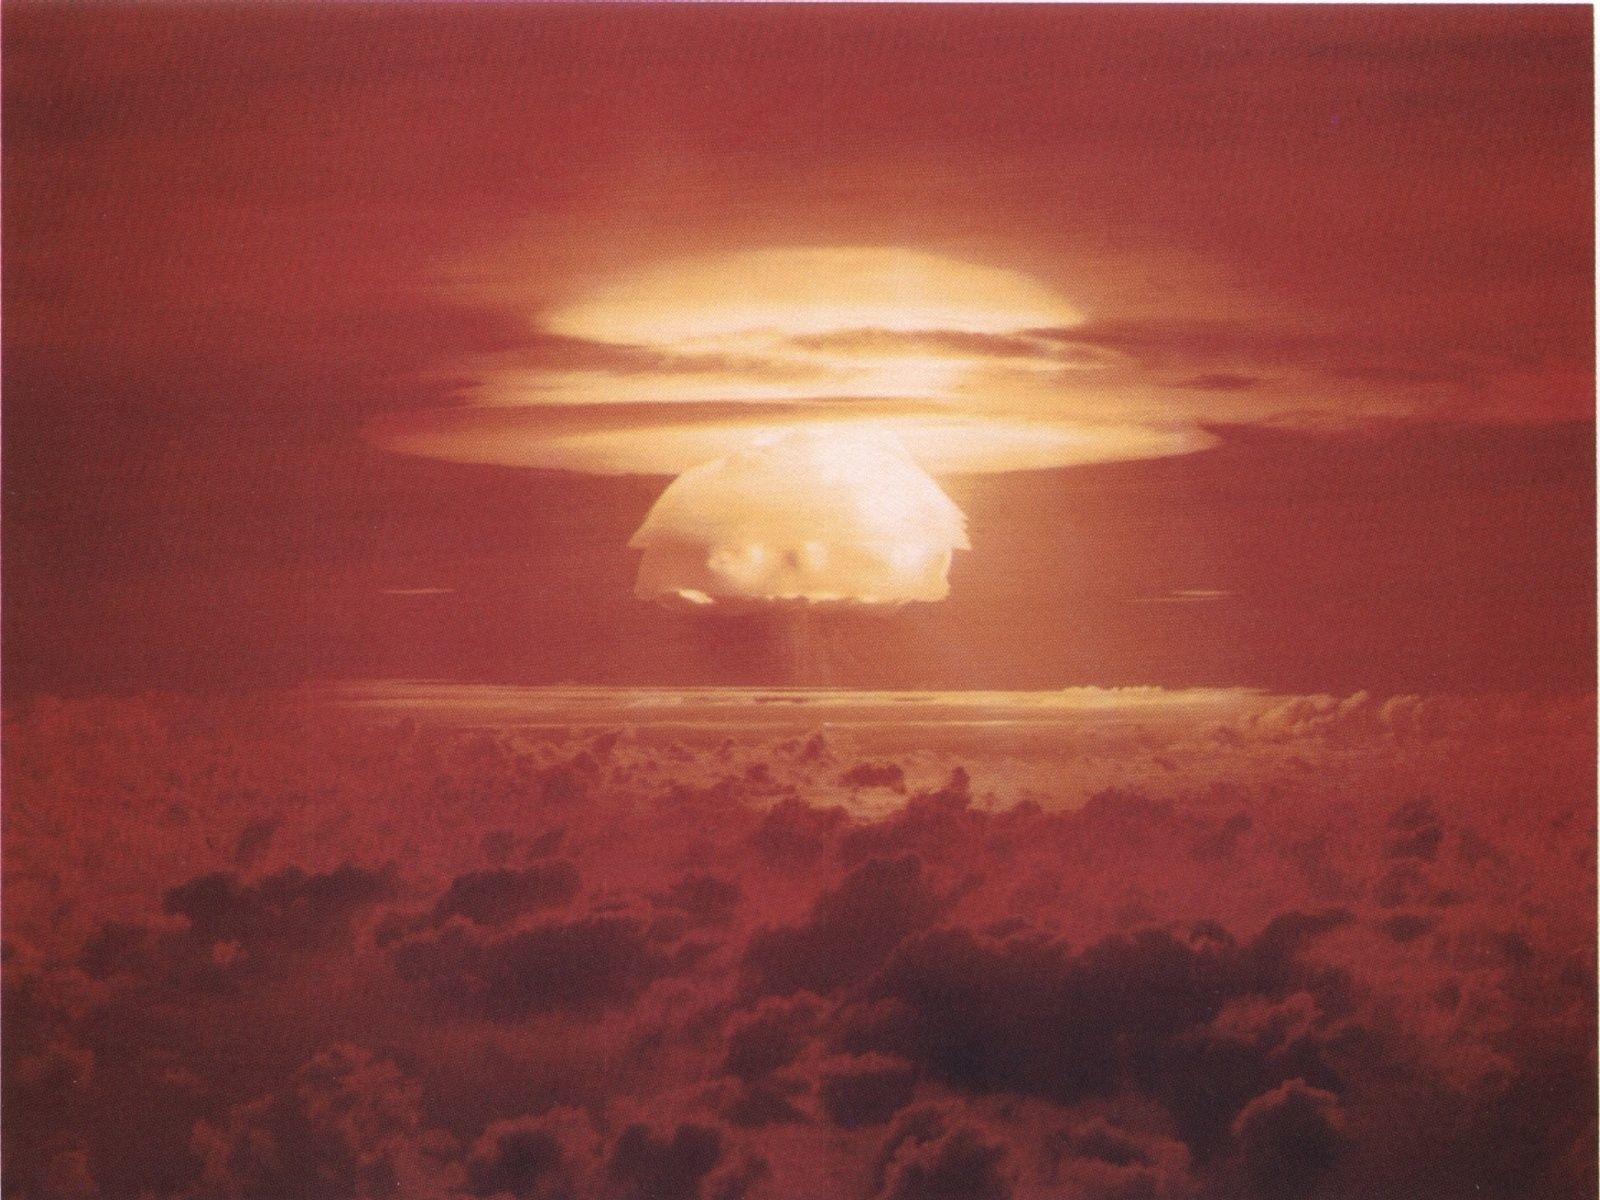 At least 340,000 Americans died from radioactive fallout between 1951 and 1973